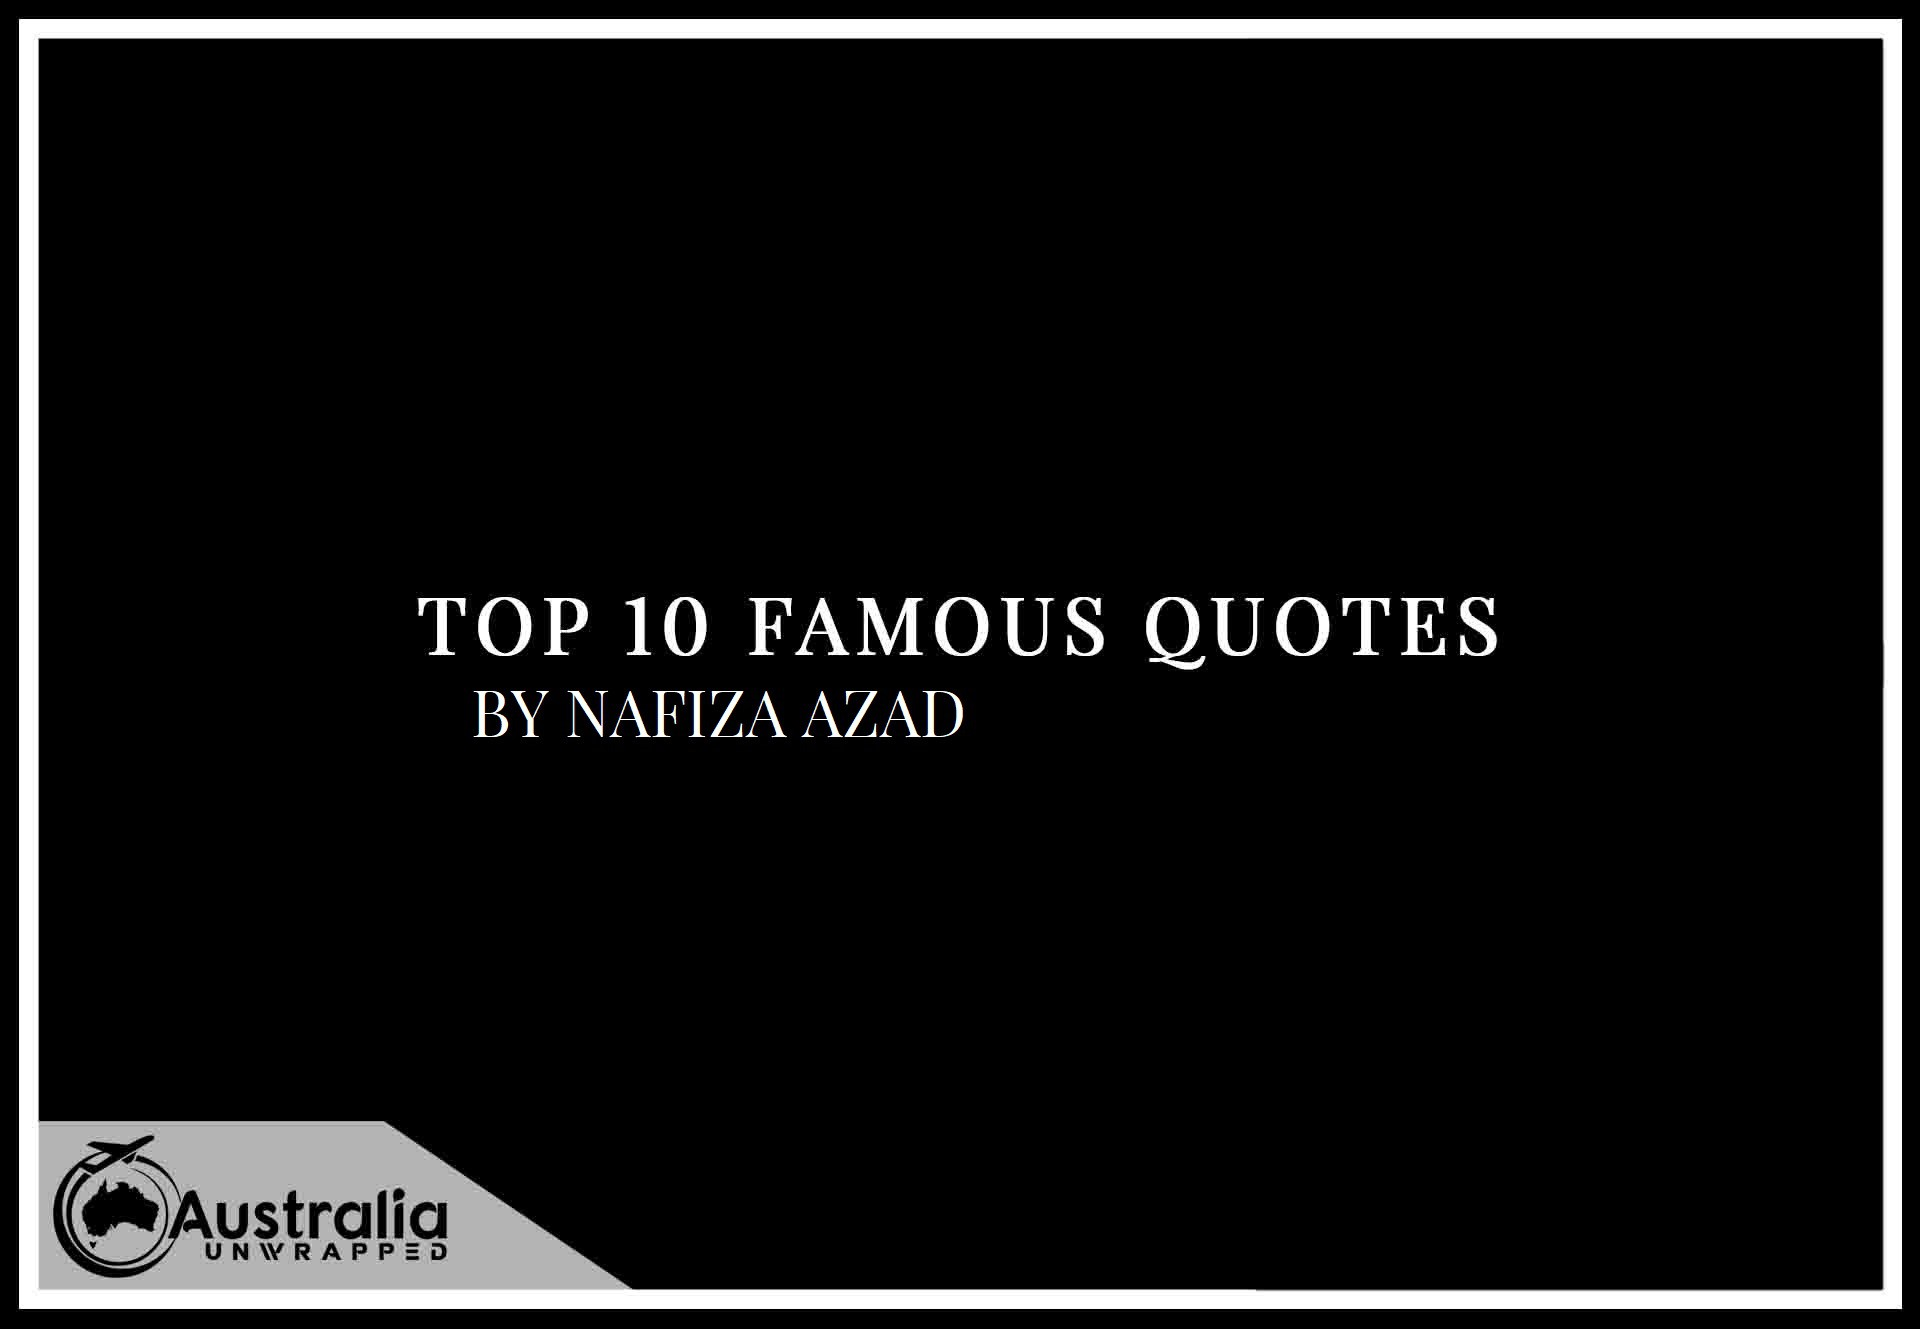 Top 10 Famous Quotes by Author Nafiza Azad